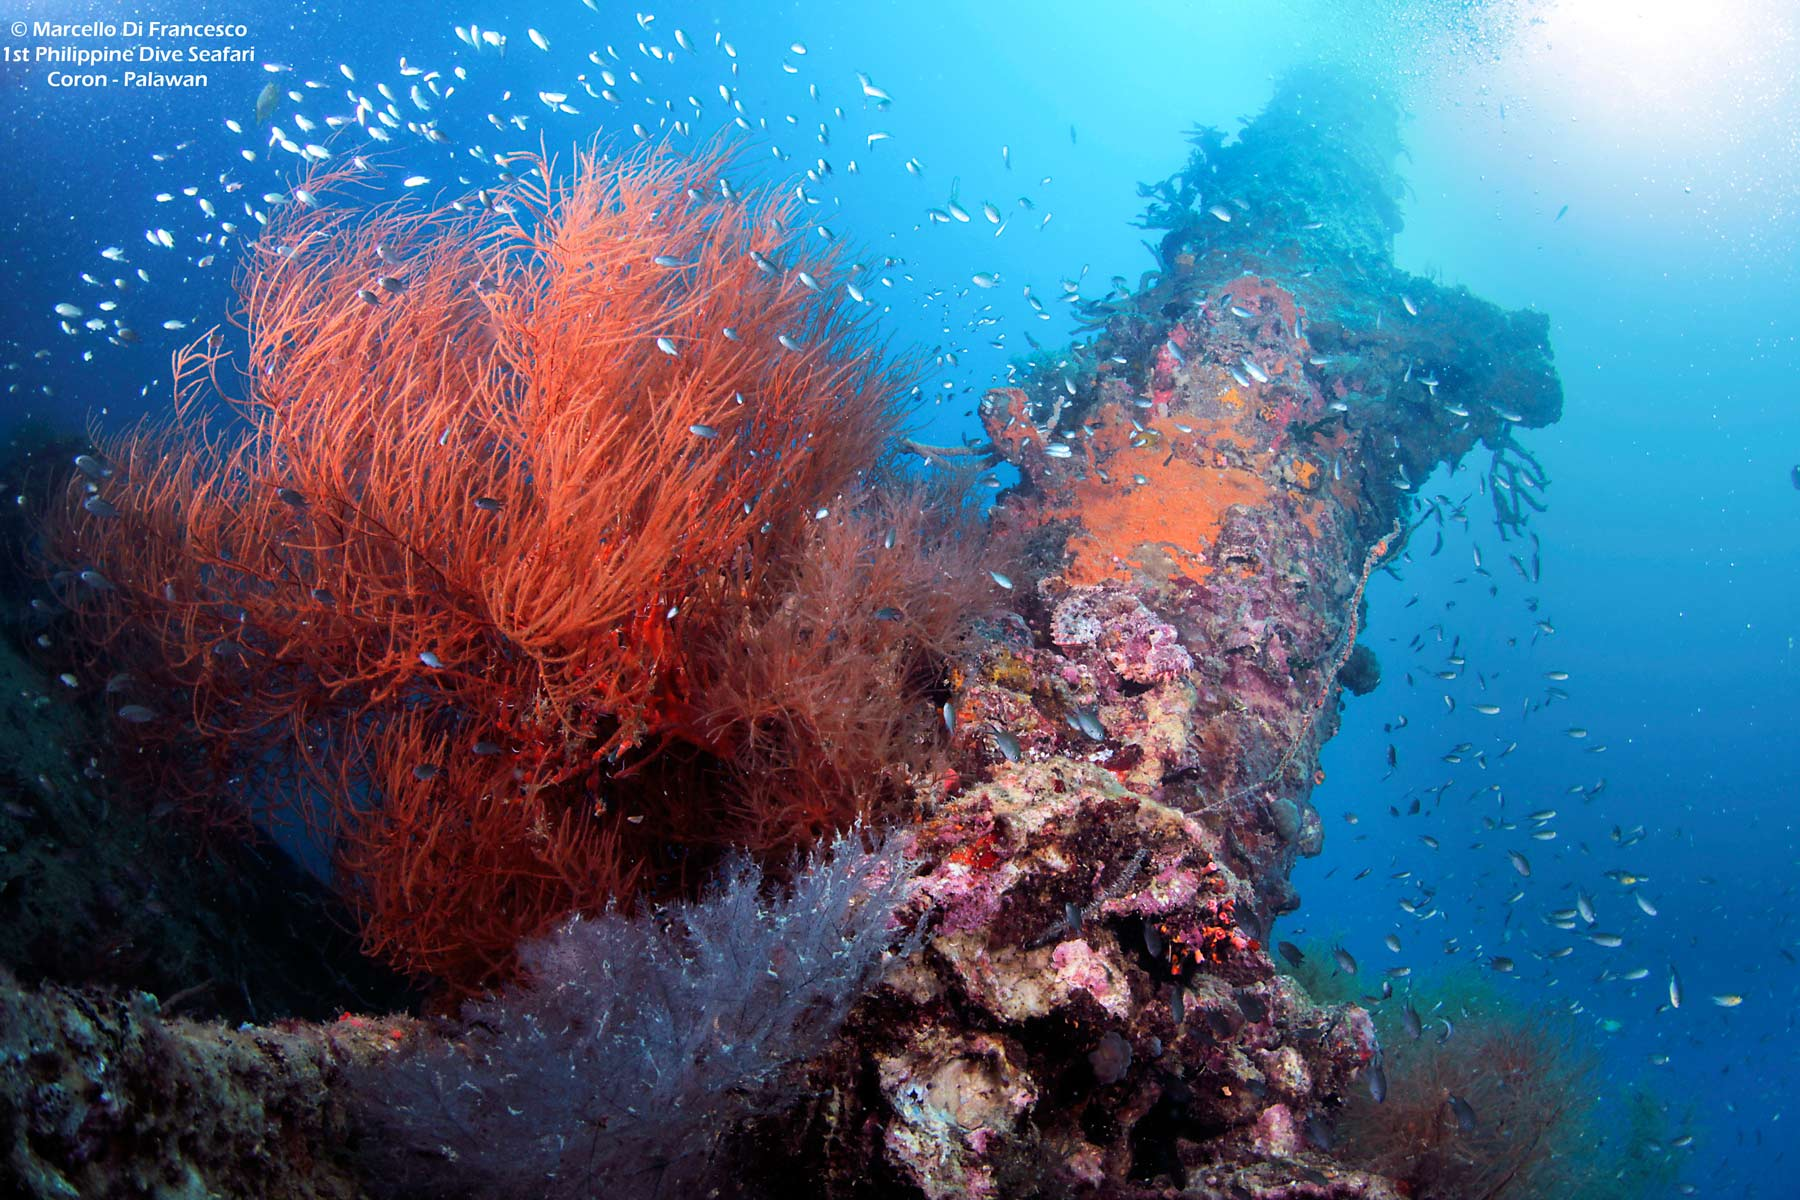 Coron Reefs and Wrecks